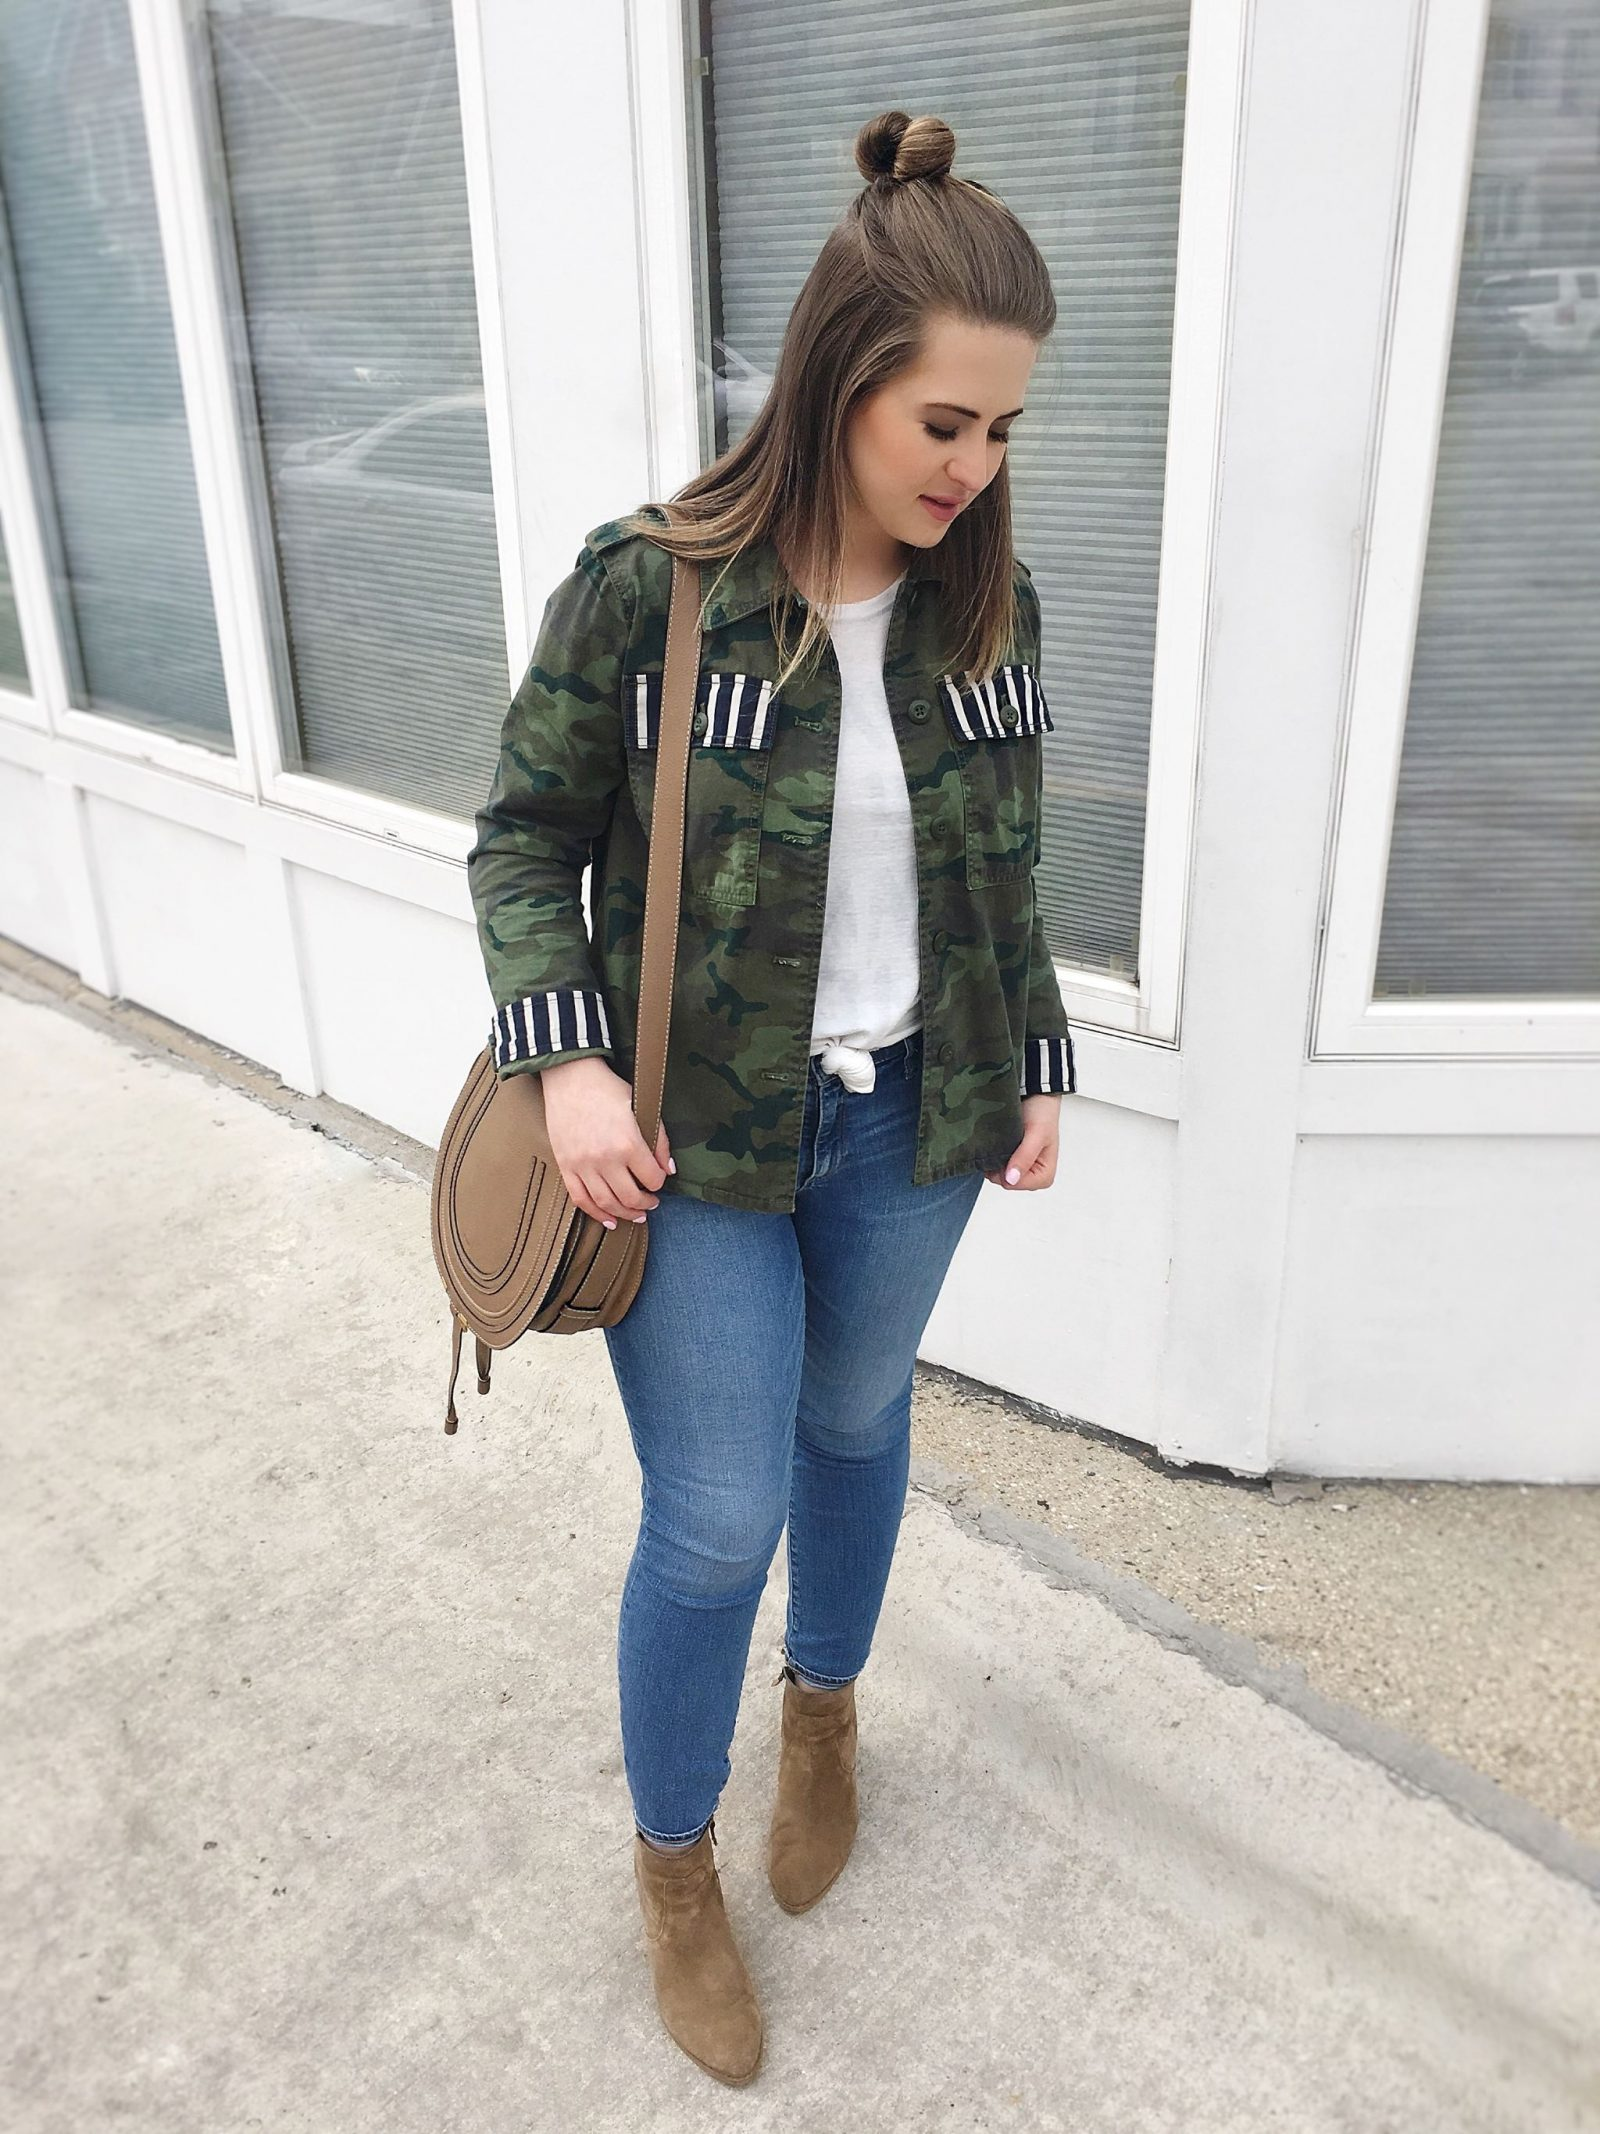 Camo Fashion Finds for Spring